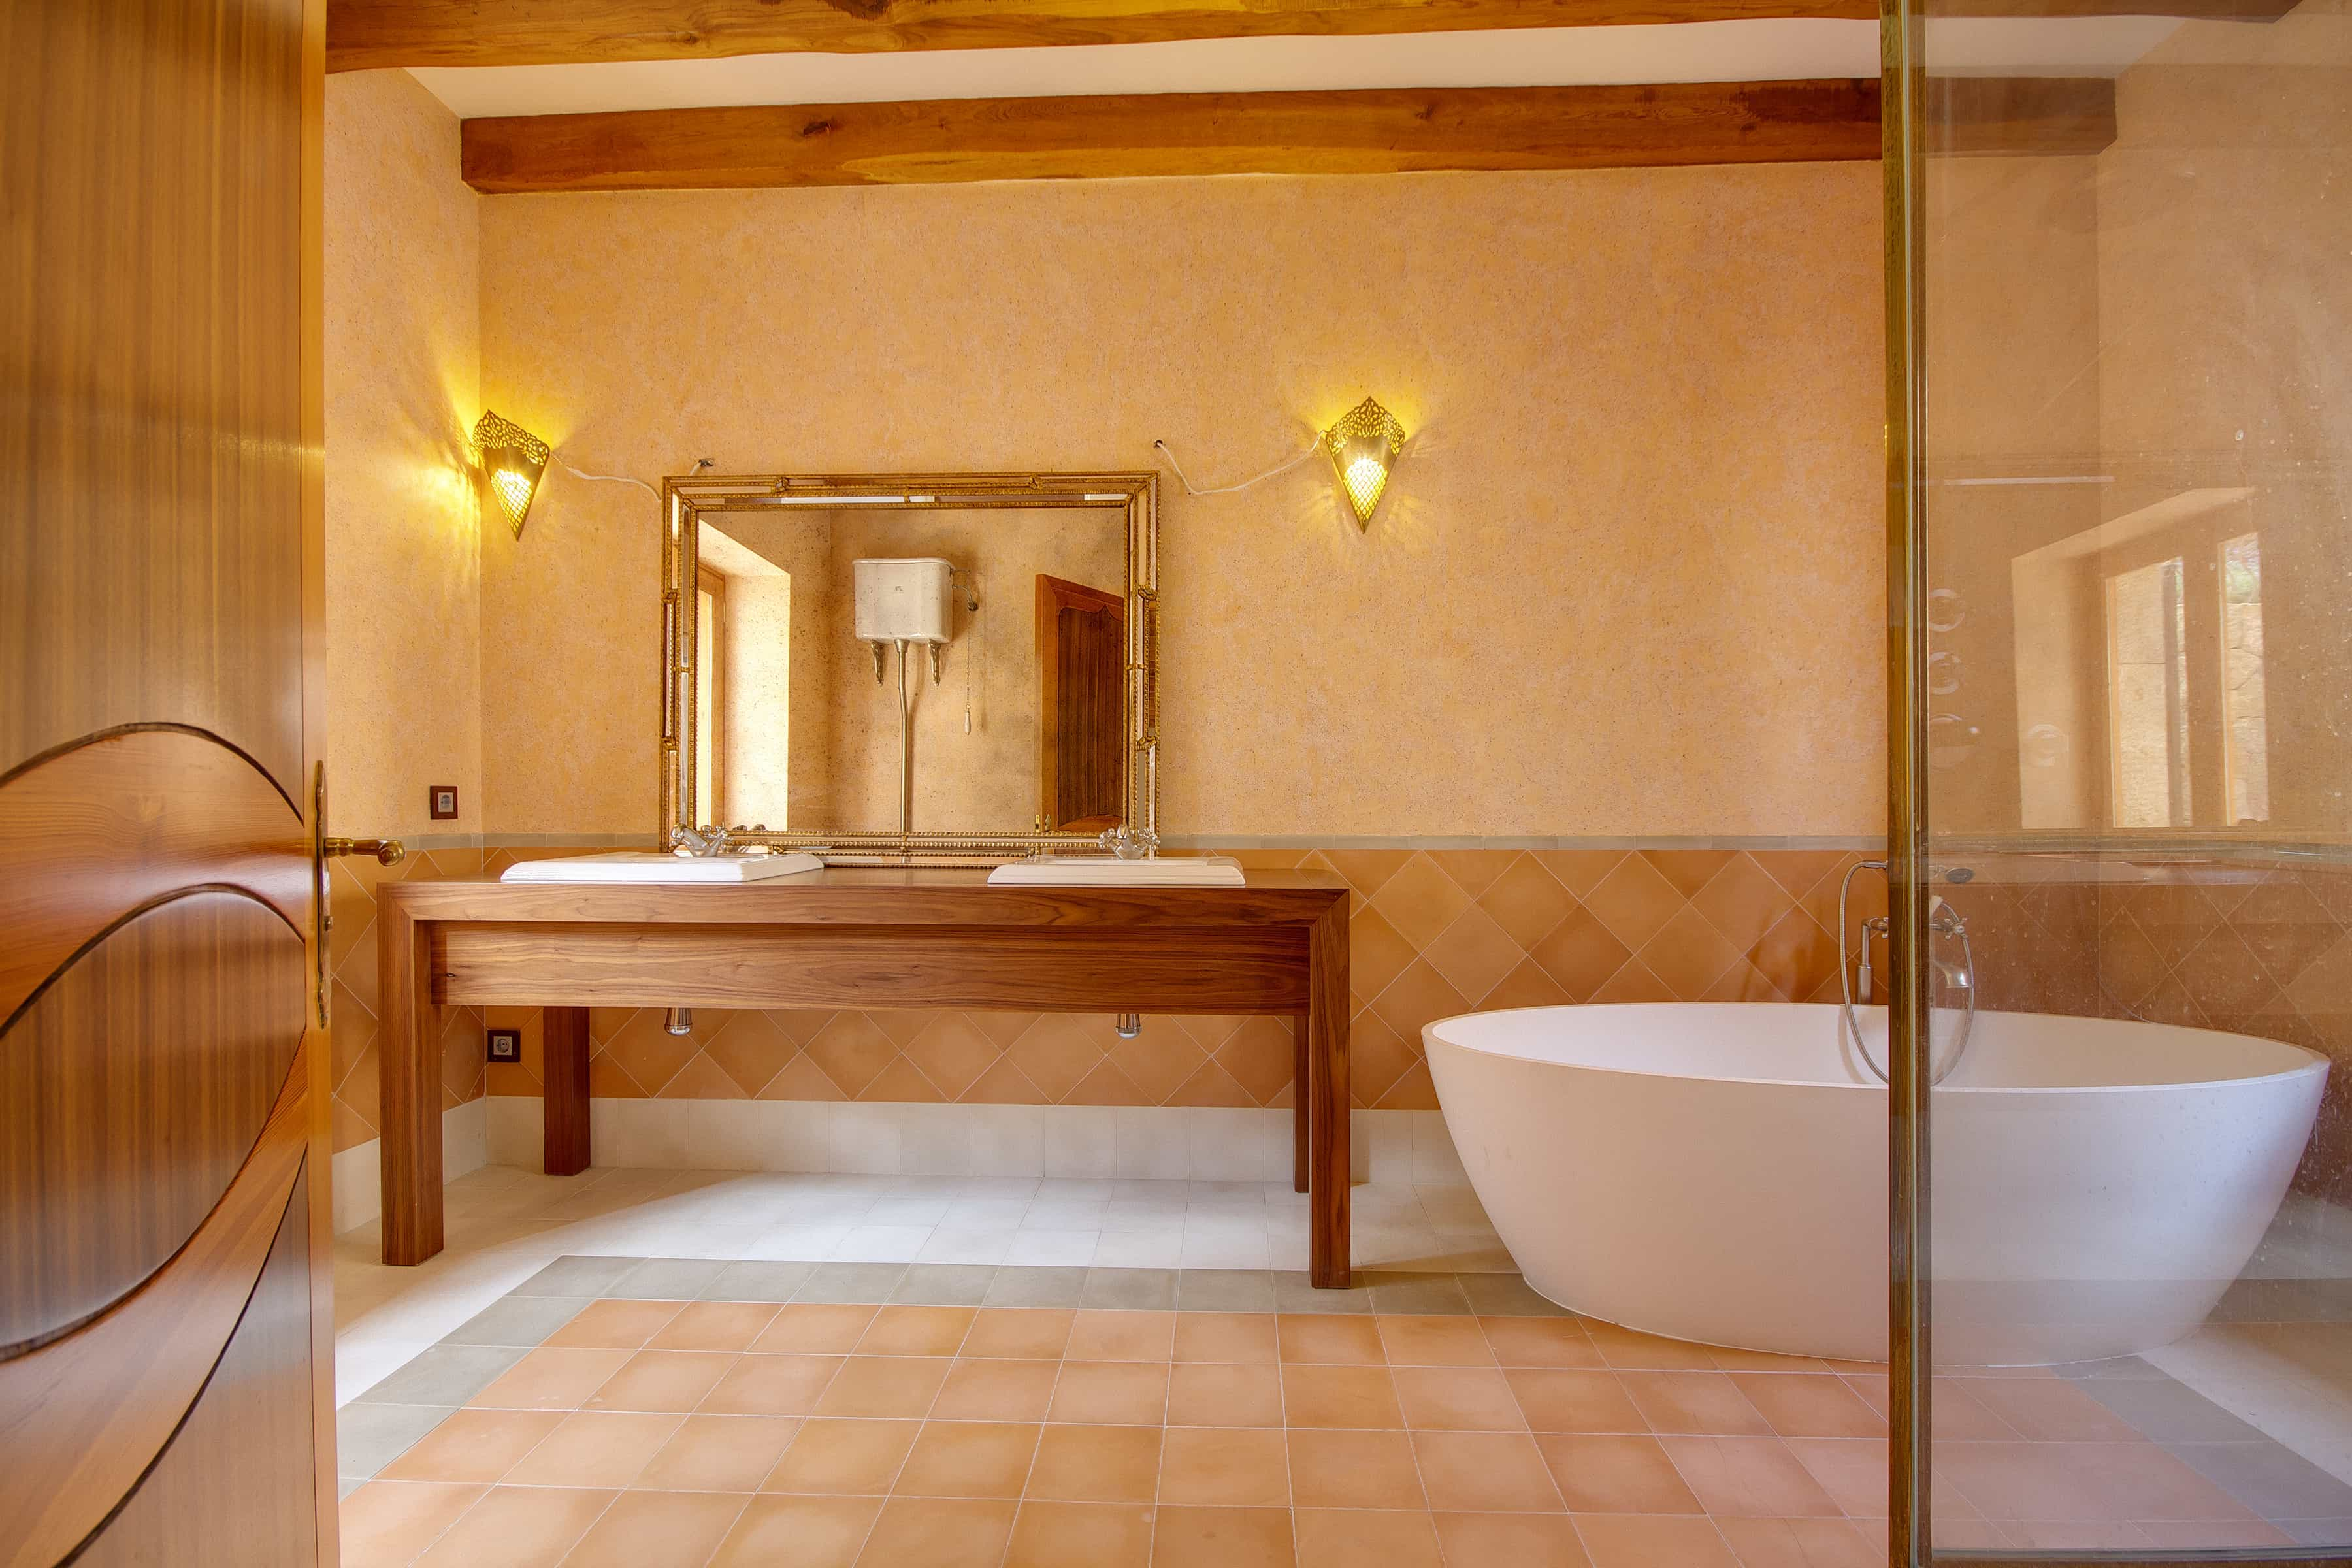 Neutral Minimalist Mexican Bathroom With Tub (Image 7 of 10)